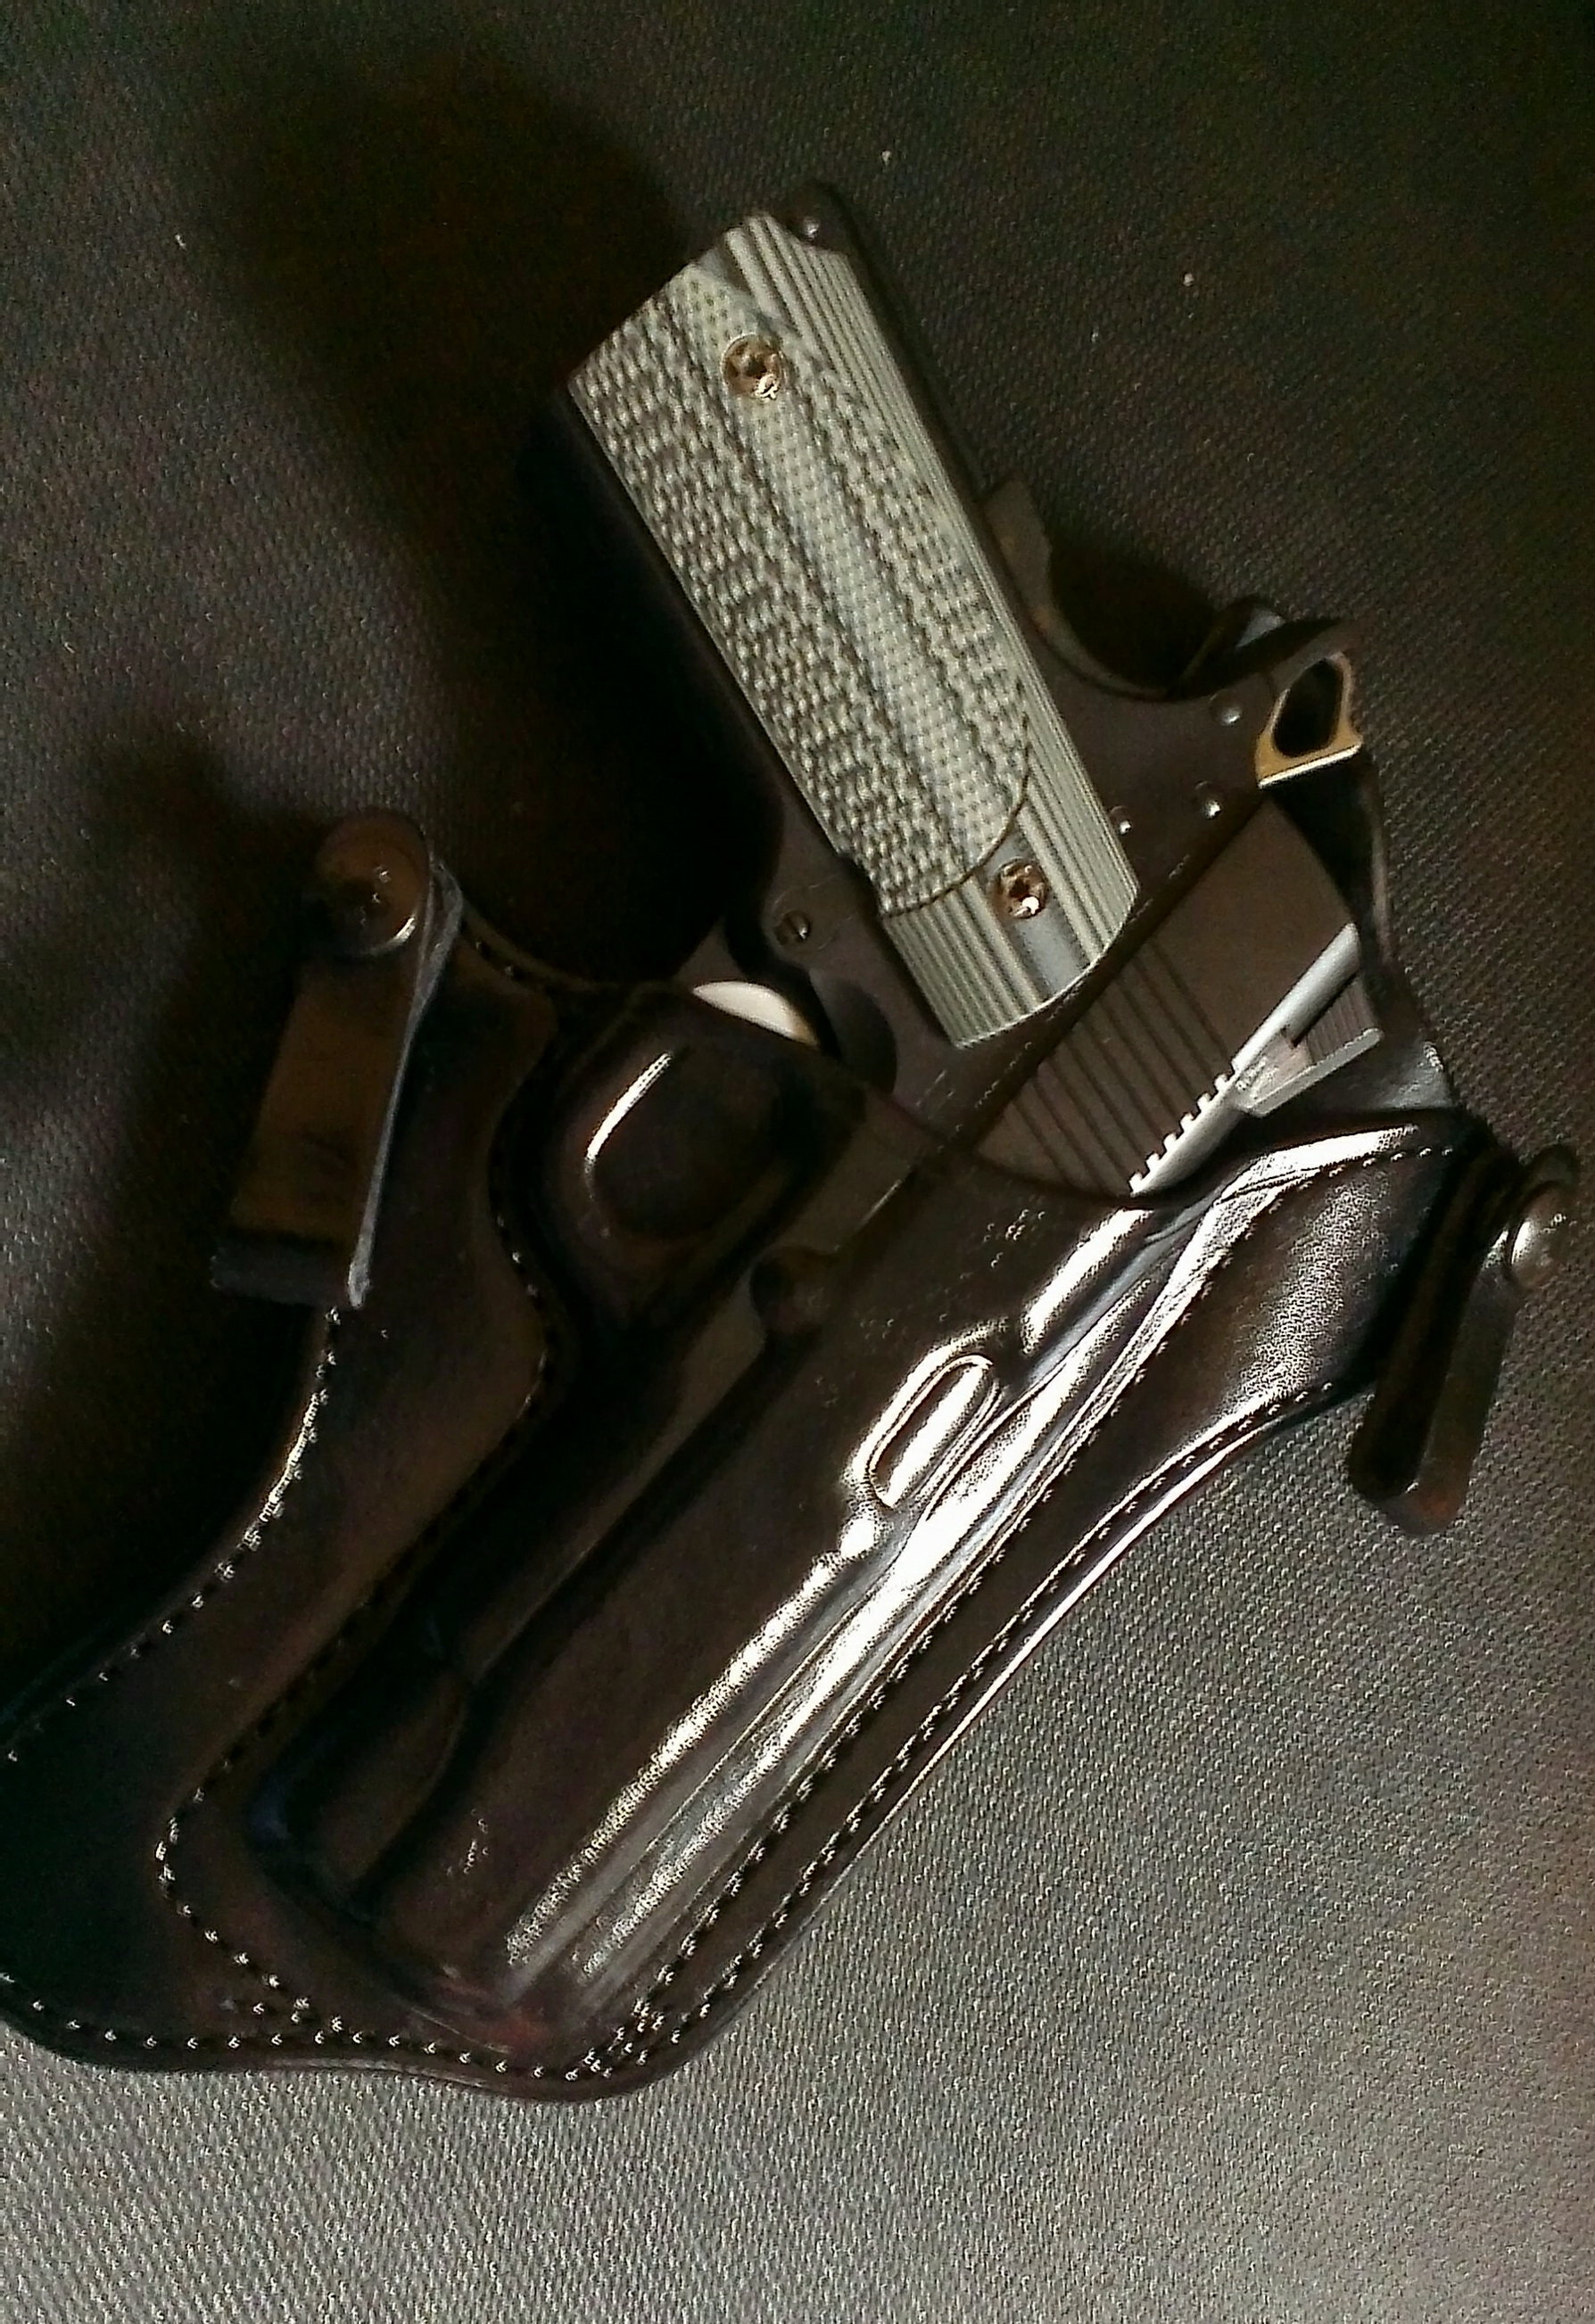 Decision time  Final answer is    DAN WESSON  But which holster?